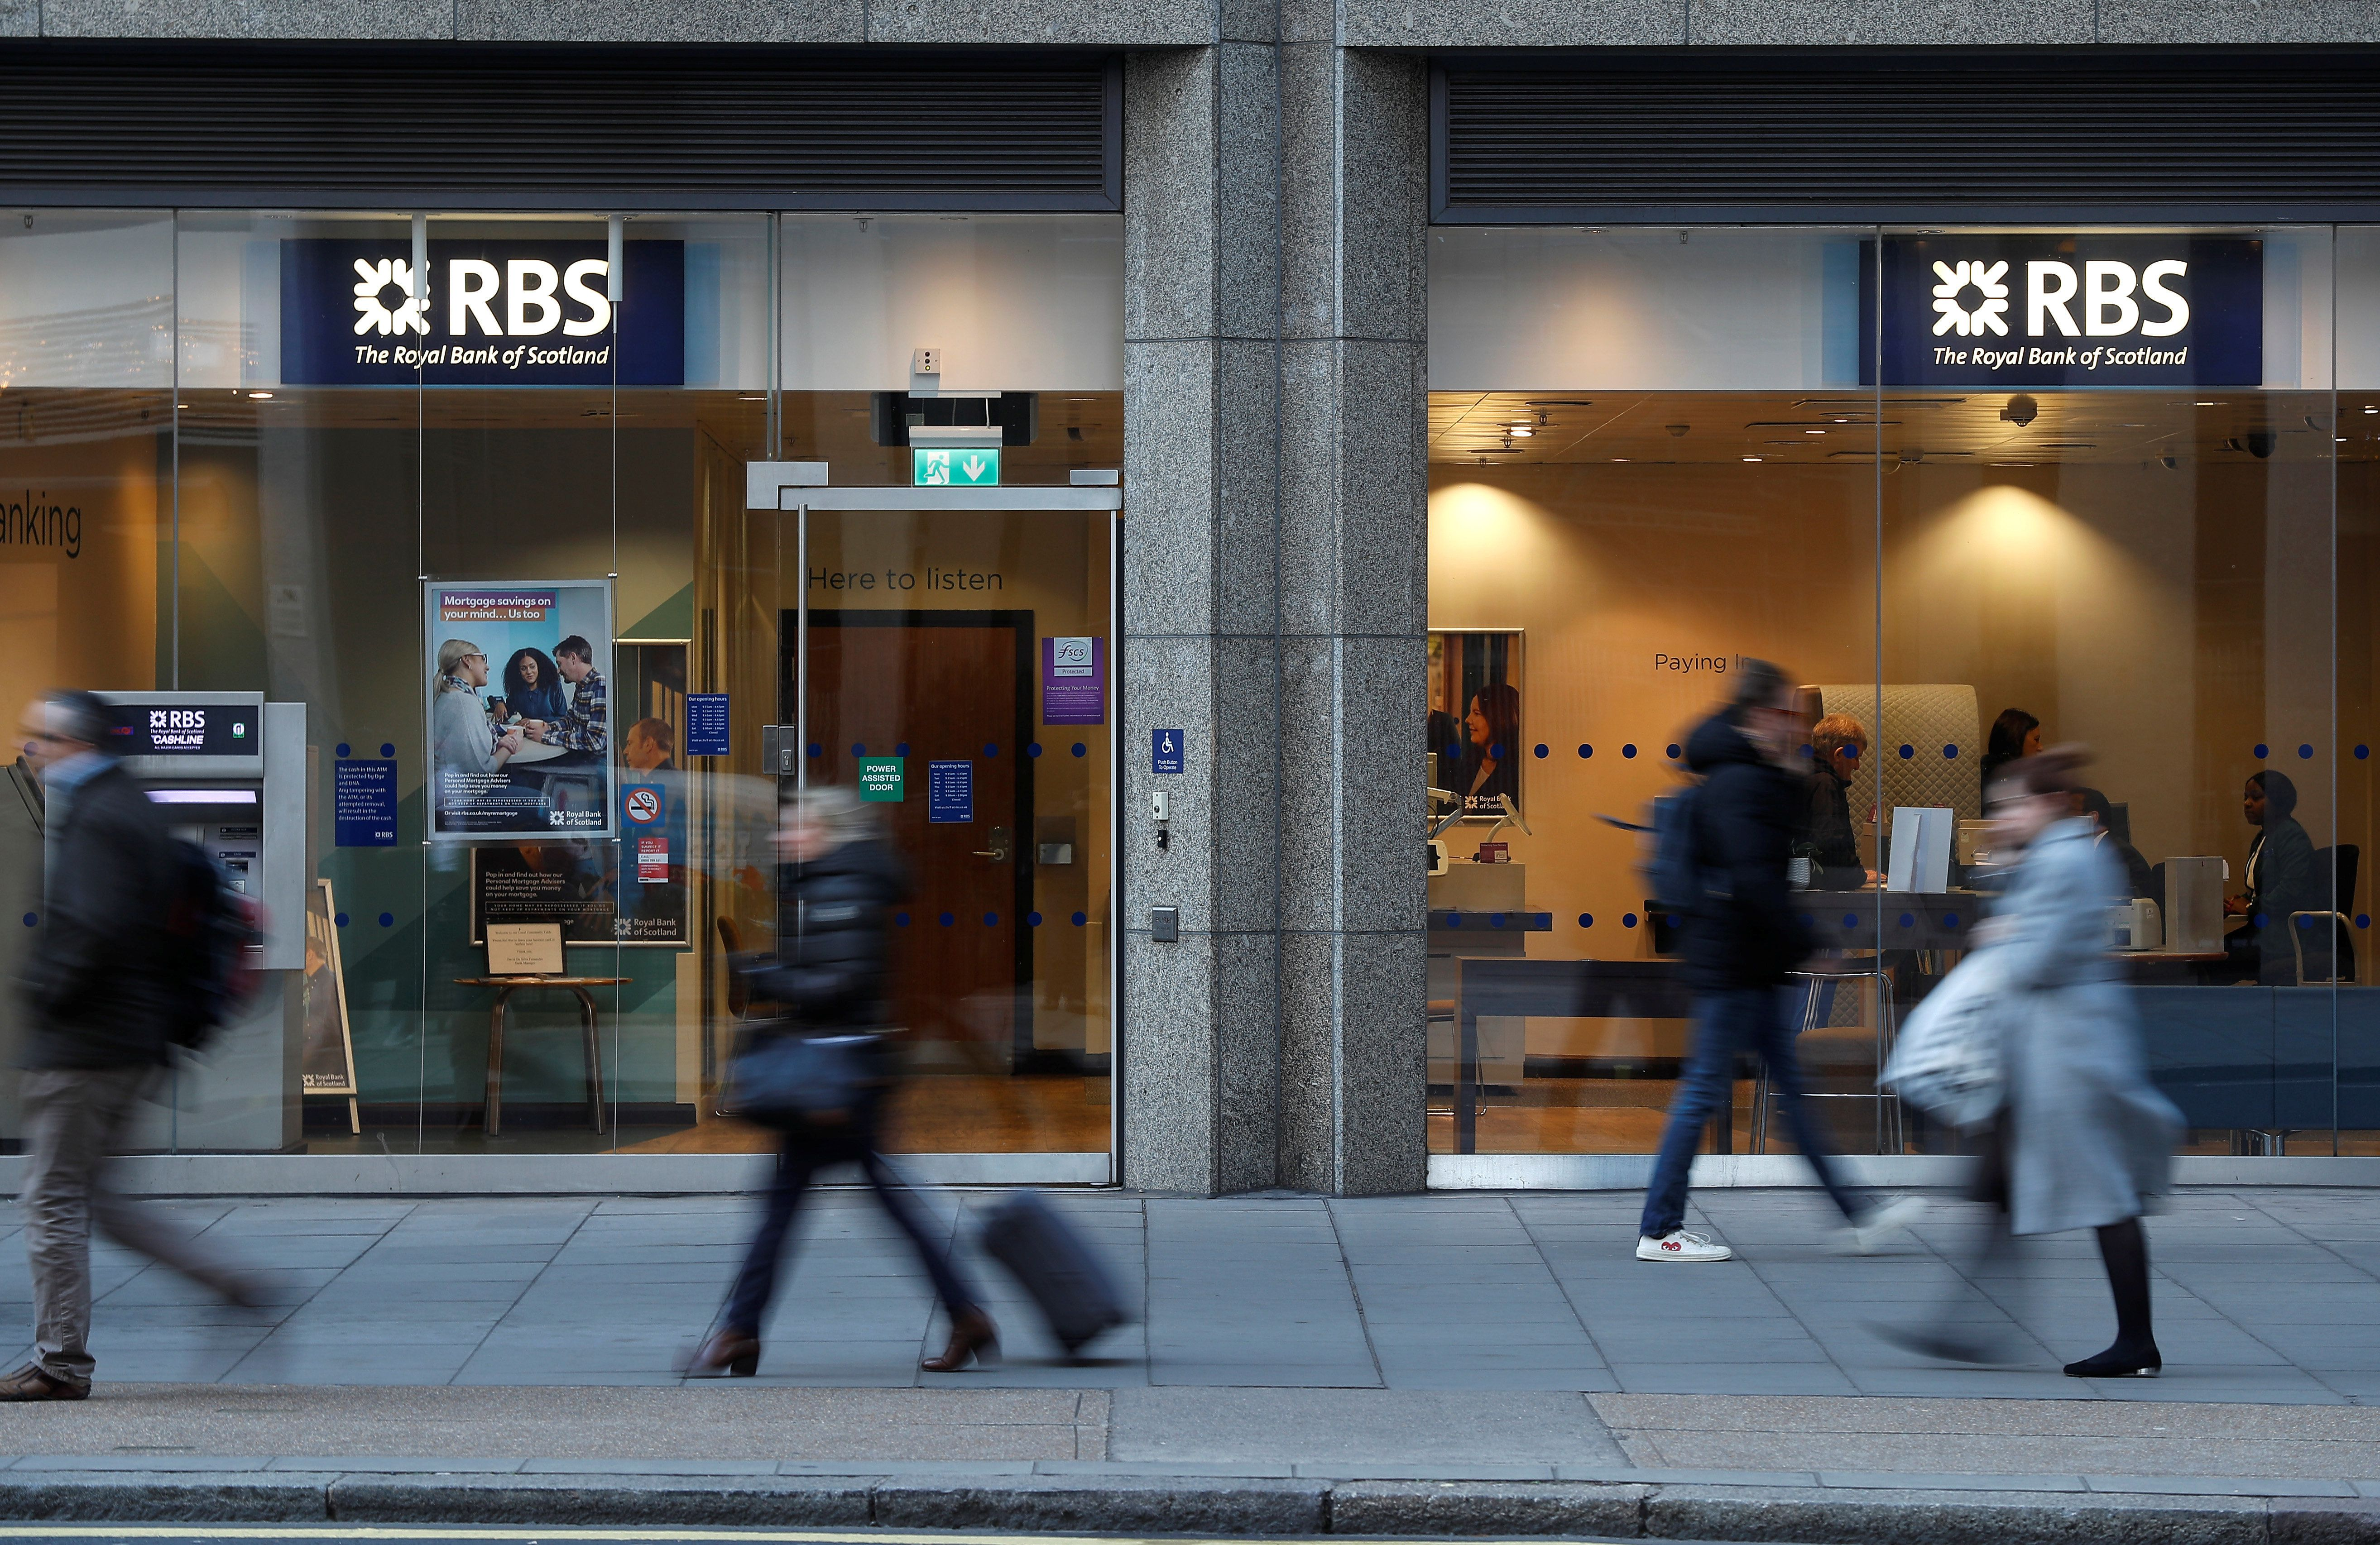 Royal Bank Of Scotland To Close Another 54 Branches, With 258 Jobs Axed – Full